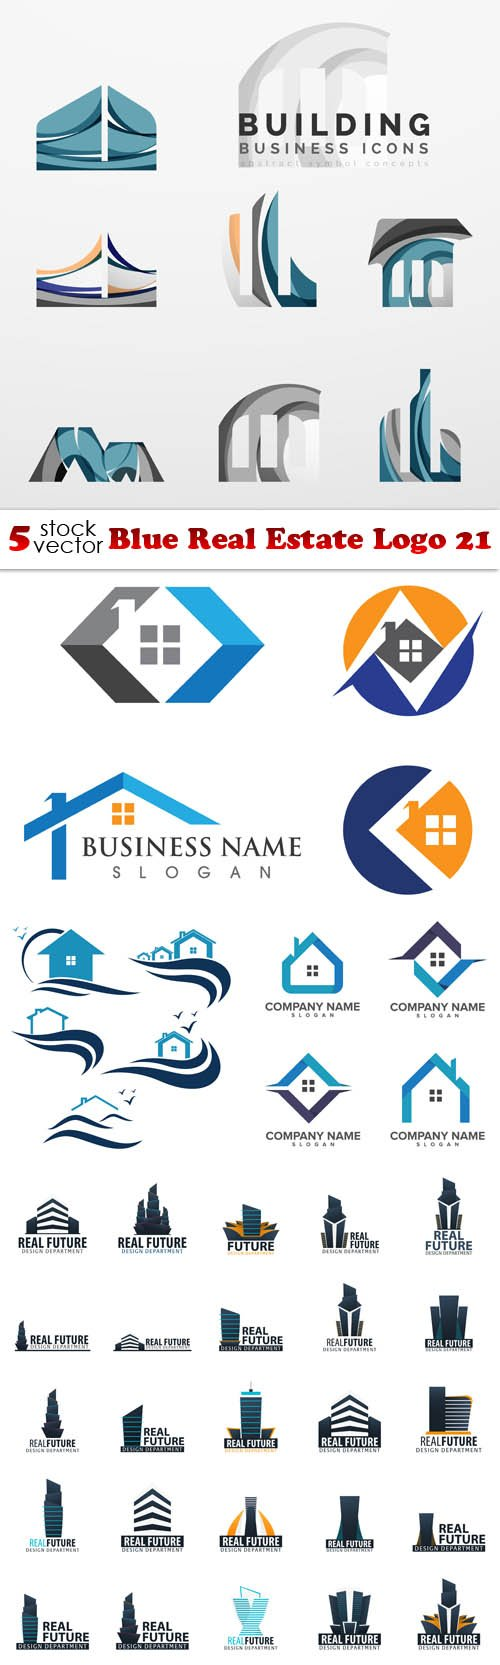 Vectors - Blue Real Estate Logo 21